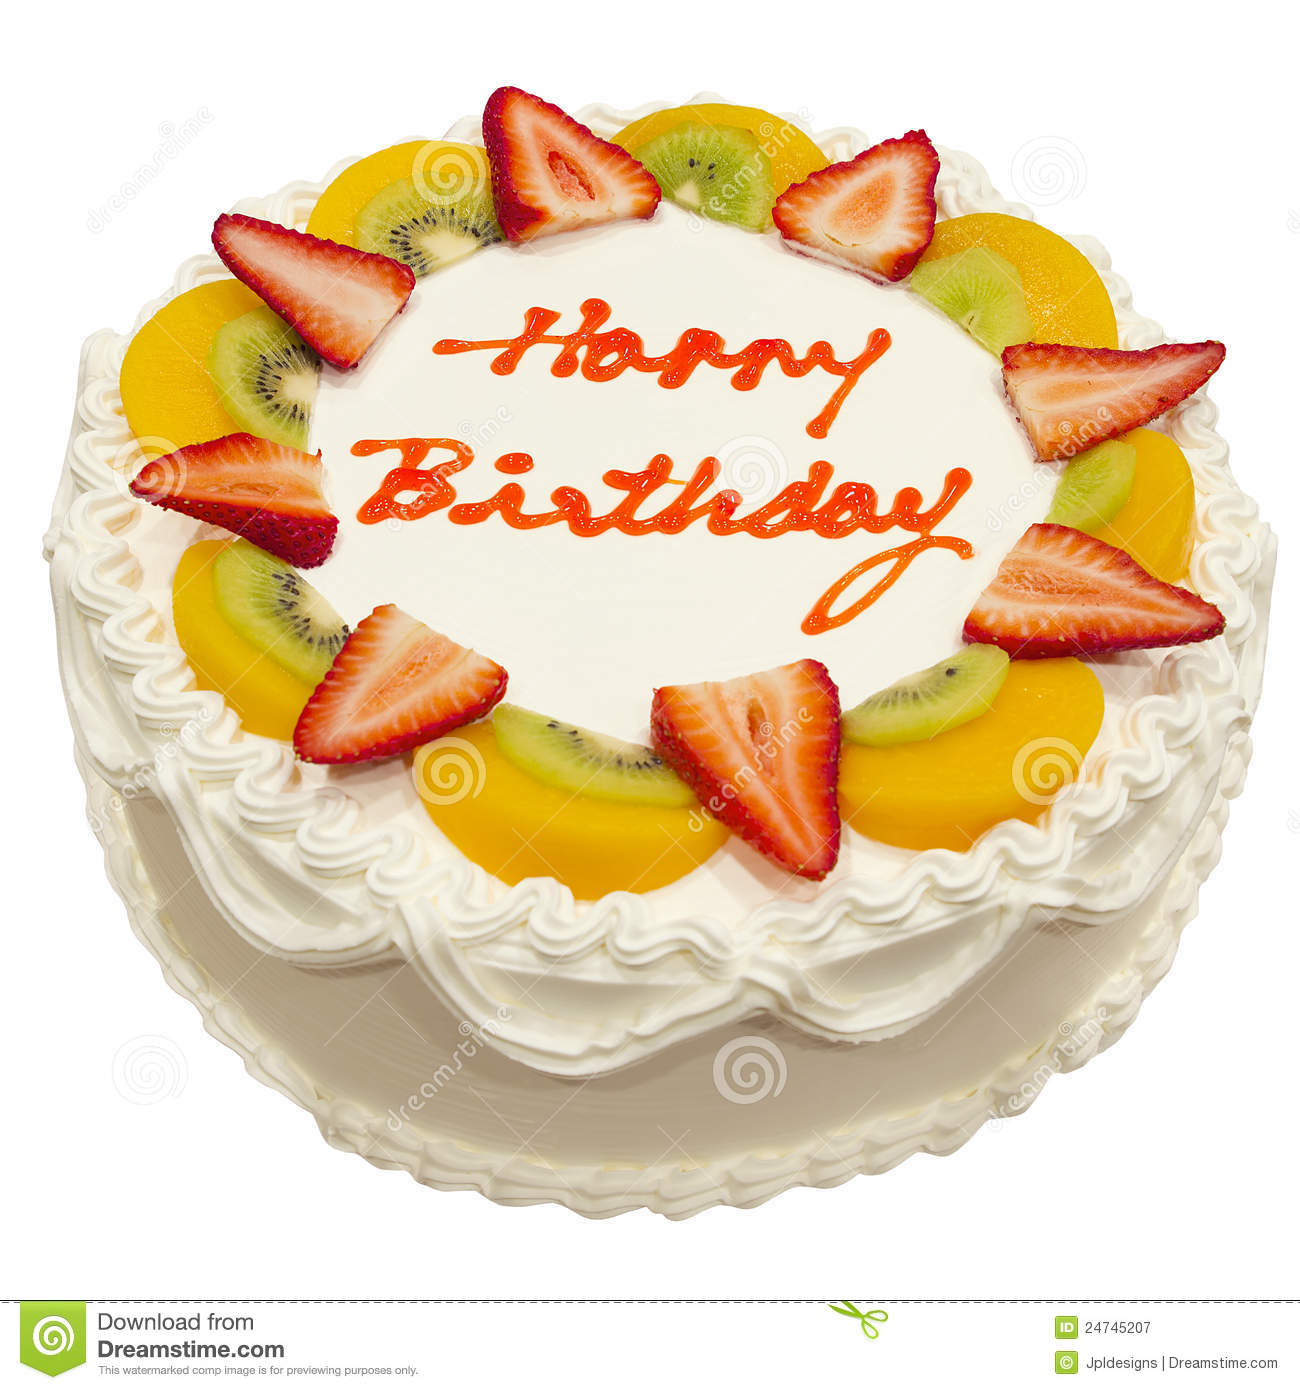 Happy Birthday Fresh Fruit Cake Stock Photos 1662 Images